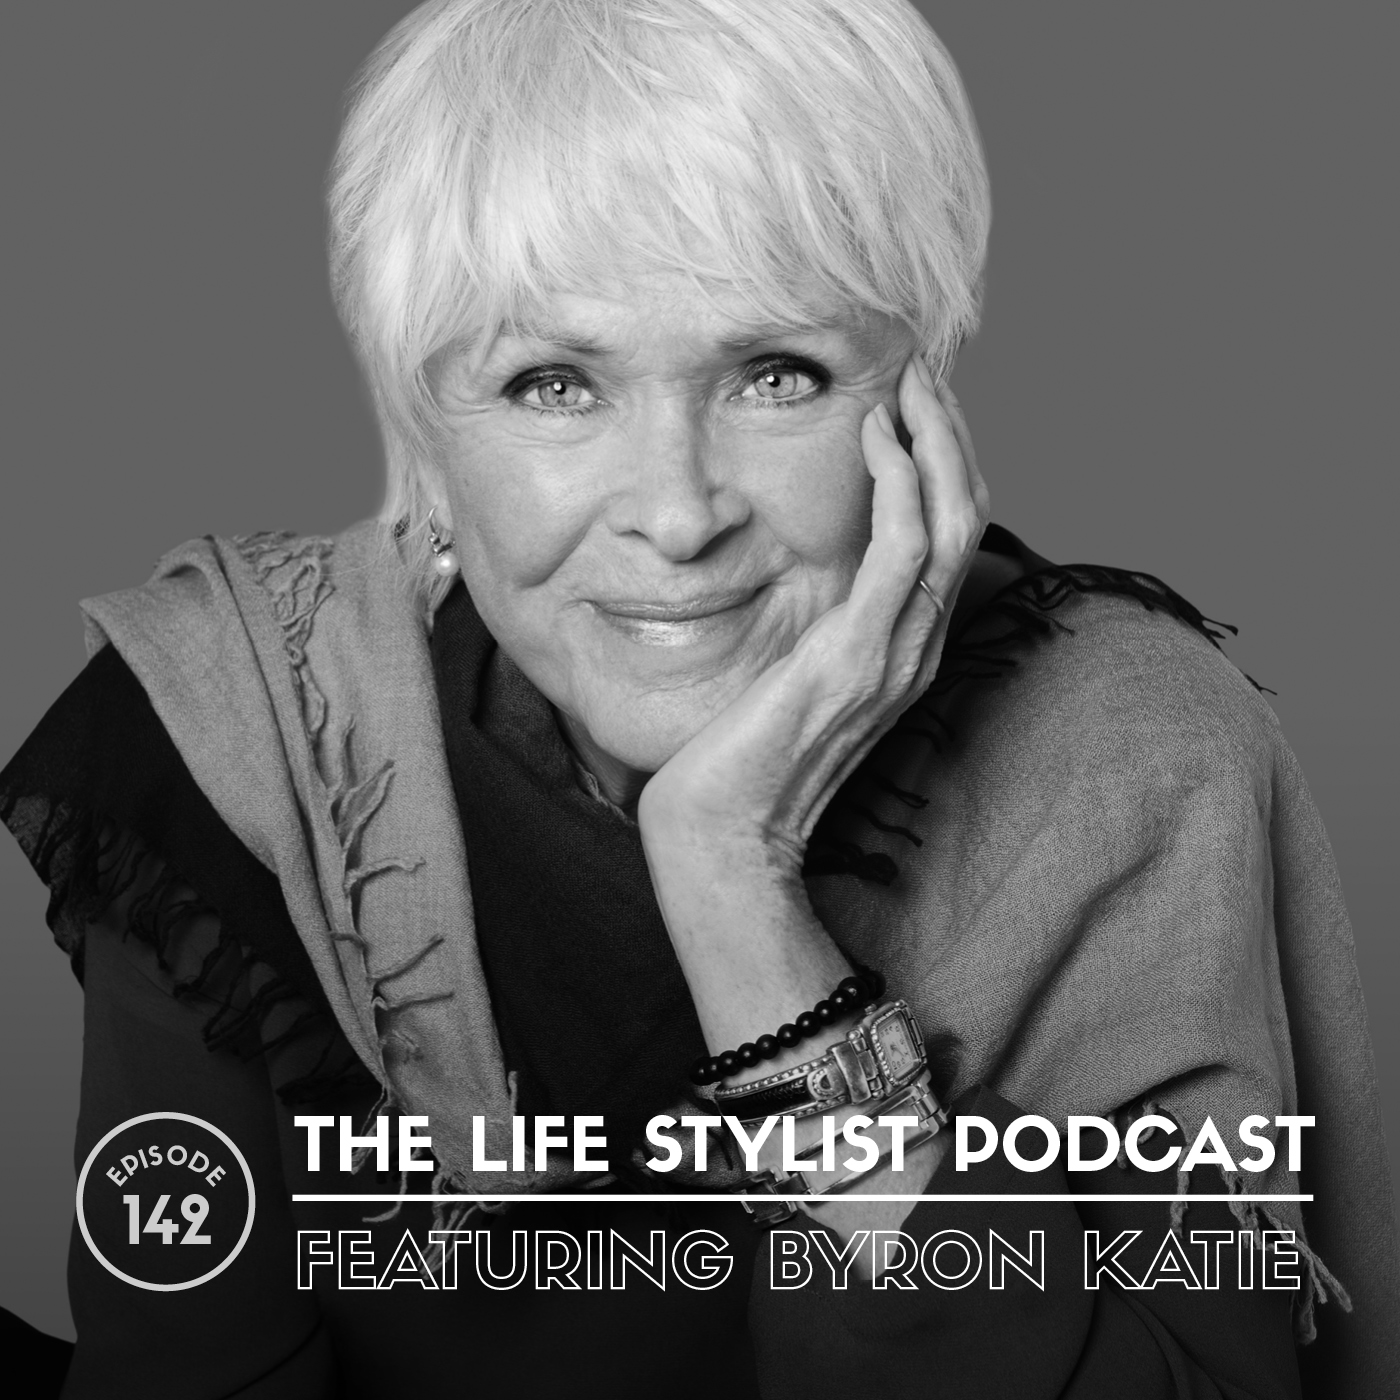 """In 1986, at the bottom of a ten-year spiral into depression, rage, and self-loathing, Byron Katie woke up one morning to a state of constant joy that has never left her. She realized that when she believed her stressful thoughts, she suffered, but that when she questioned them, she didn't suffer, and that this is true for every human being. Her simple yet powerful process of inquiry is called  The Work .   The Work  consists of four questions and the turnarounds, which are a way of experiencing the opposite of what you believe. When you question a thought, you see around it to the choices beyond suffering.  Katie has been bringing  The Work  to millions of people for more than thirty years. Her public events, weekend workshops, five-day intensives, nine-day  School for The Work , and 28-day residential Turnaround House have helped people all over the world begin to end their suffering.  Eckhart Tolle says, """"Byron Katie's Work is a great blessing for our planet."""" Time magazine calls Katie """"a spiritual innovator for the new millennium.""""  Byron Katie's books include the bestselling  Loving What Is ,  I Need Your Love—Is That True? ,  A Thousand Names for Joy , and  A Mind at Home with Itself . For more information, visit thework.com.  At  thework.com , you will find free materials to download, audio and video clips, a schedule of events, a free helpline, and much more."""